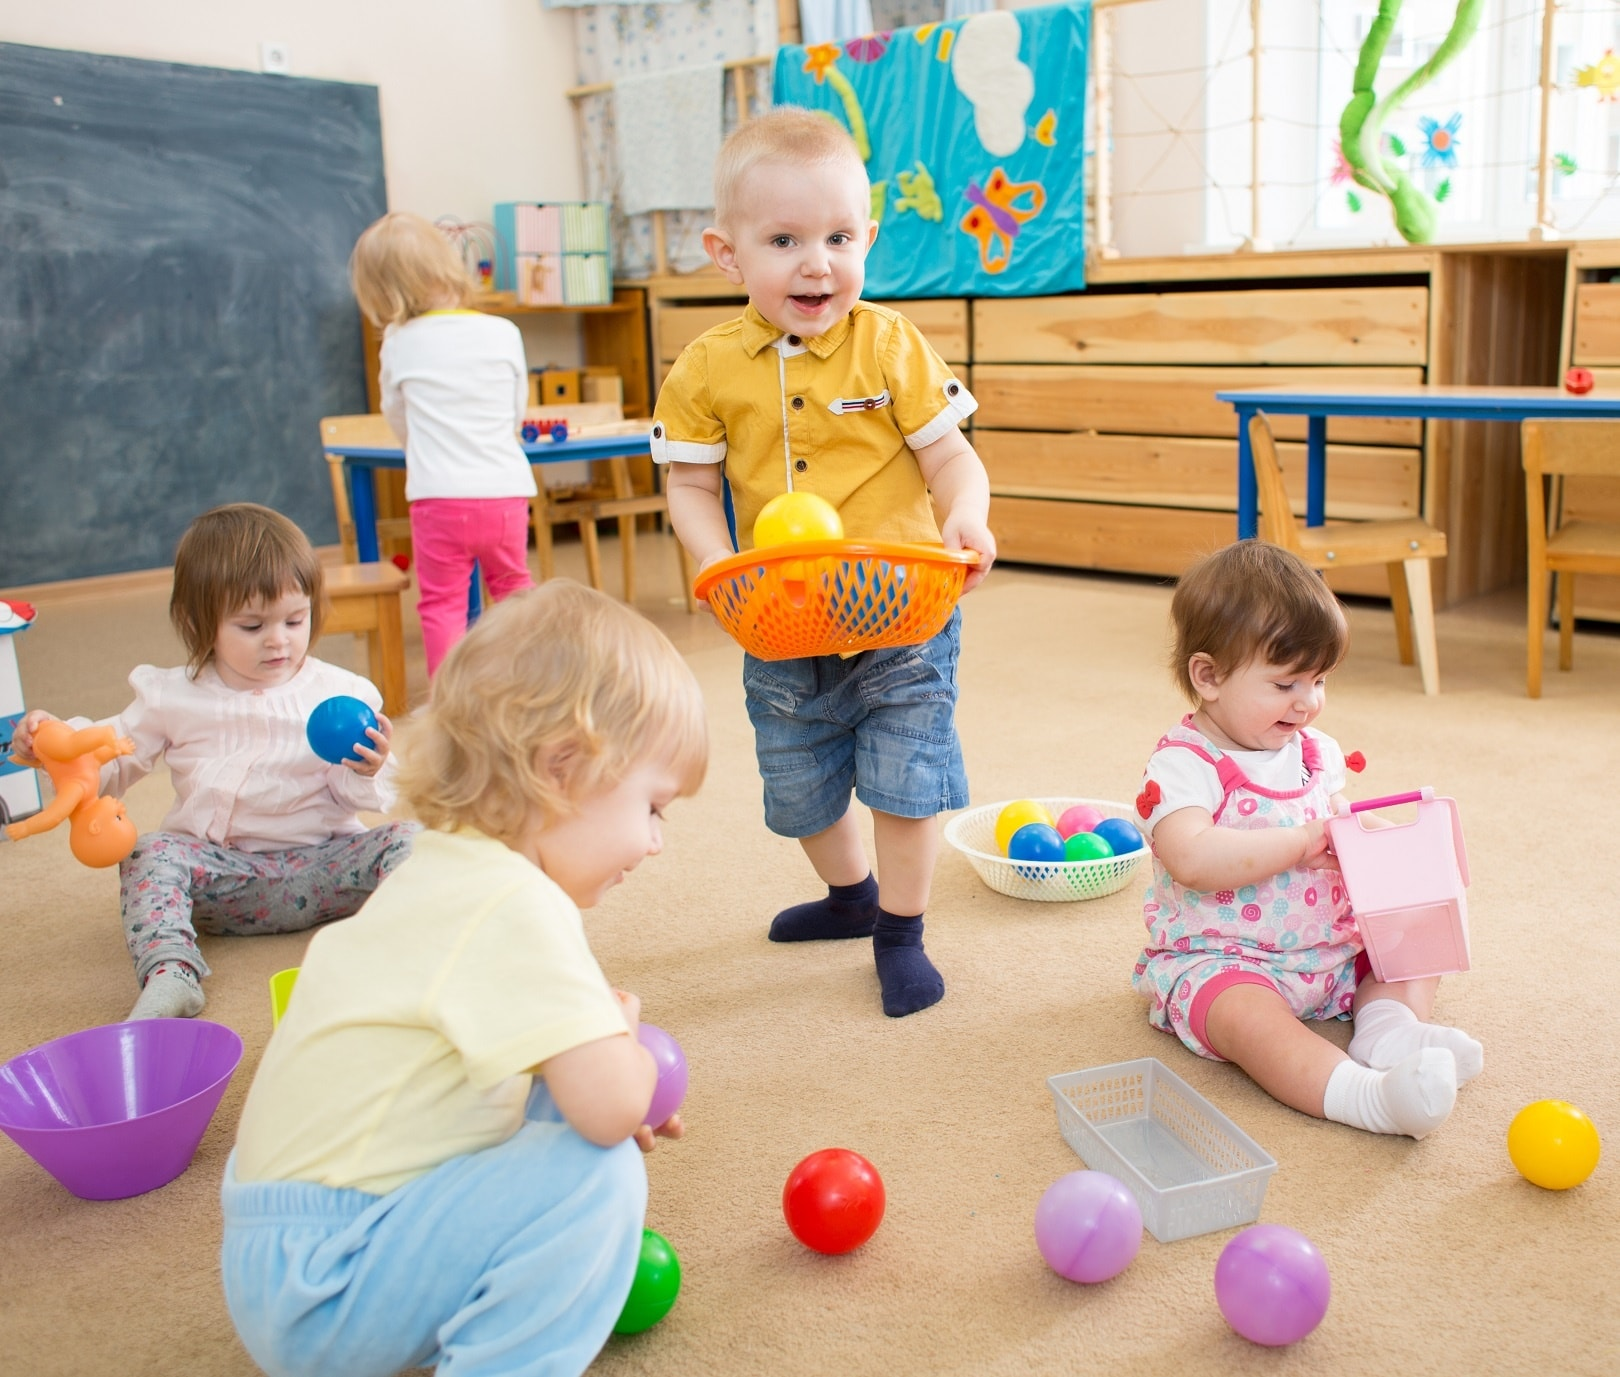 Factors need to consider while choosing a Day Care Center - Motivational and Inspirational Quotes for Your Kids